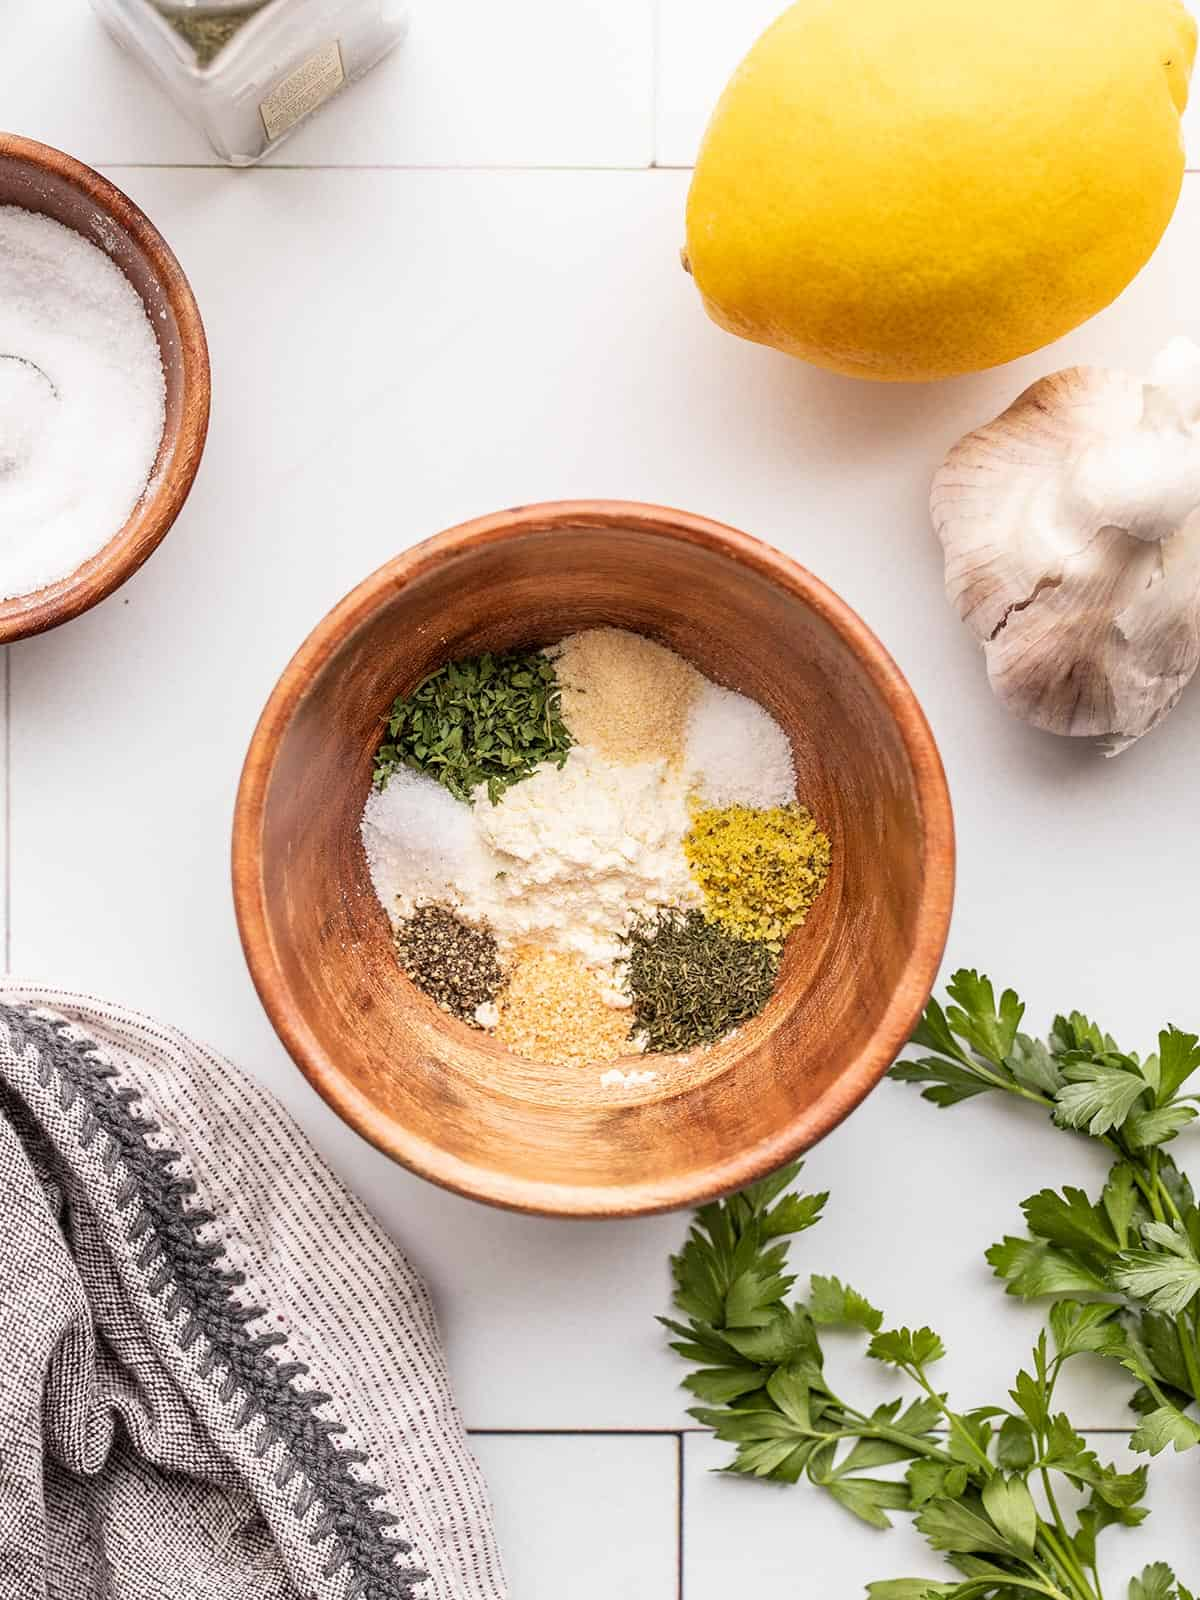 Ranch seasoning mix ingredients in a small wooden bowl with lemon, garlic, and parsley on the sides